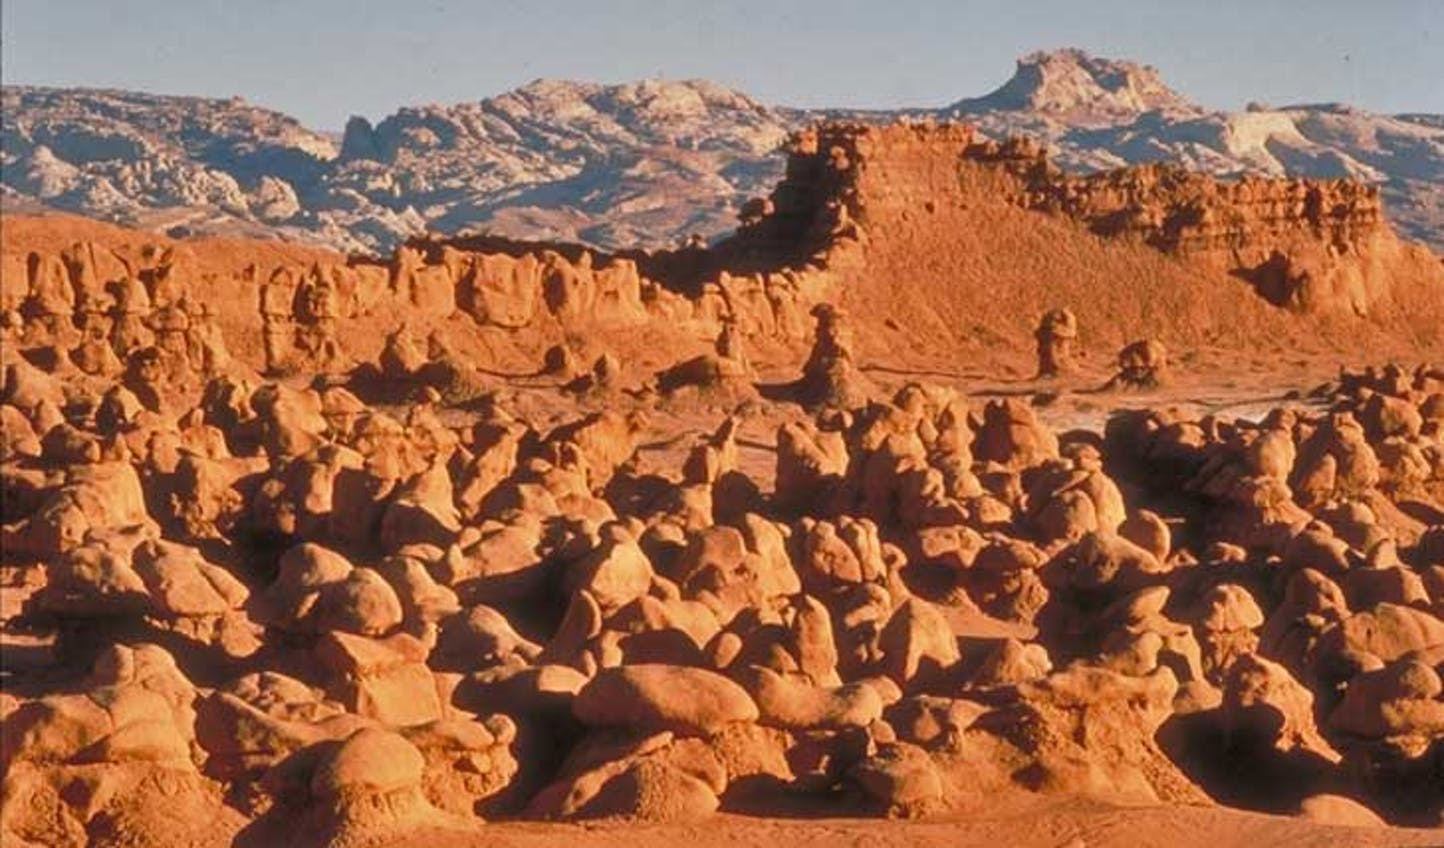 Rocky outcrops of goblin Valley, Utah